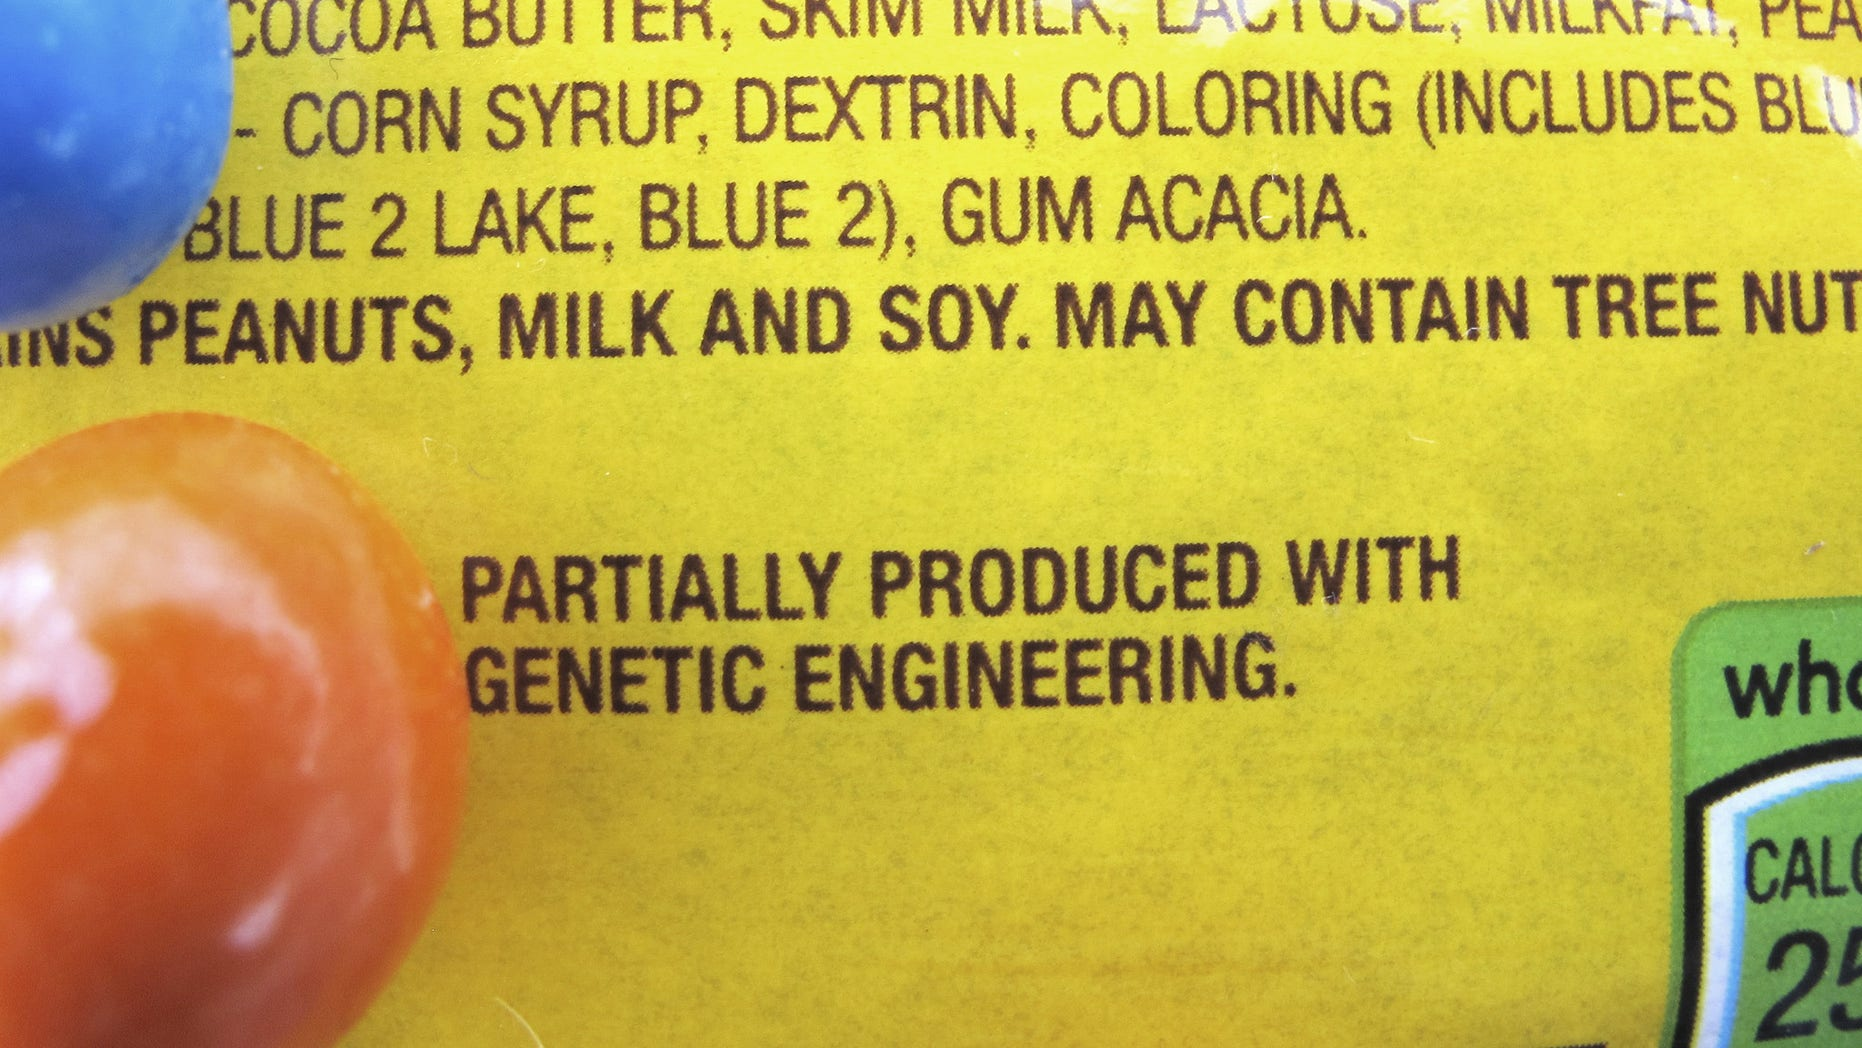 """A new disclosure statement is displayed on a package of Peanut M&Ms candy in Montpelier, Vt., saying they are """"Partially produced with genetic engineering."""" On July 1, Vermont became the first state to require the labeling of foods made with genetically modified ingredients."""